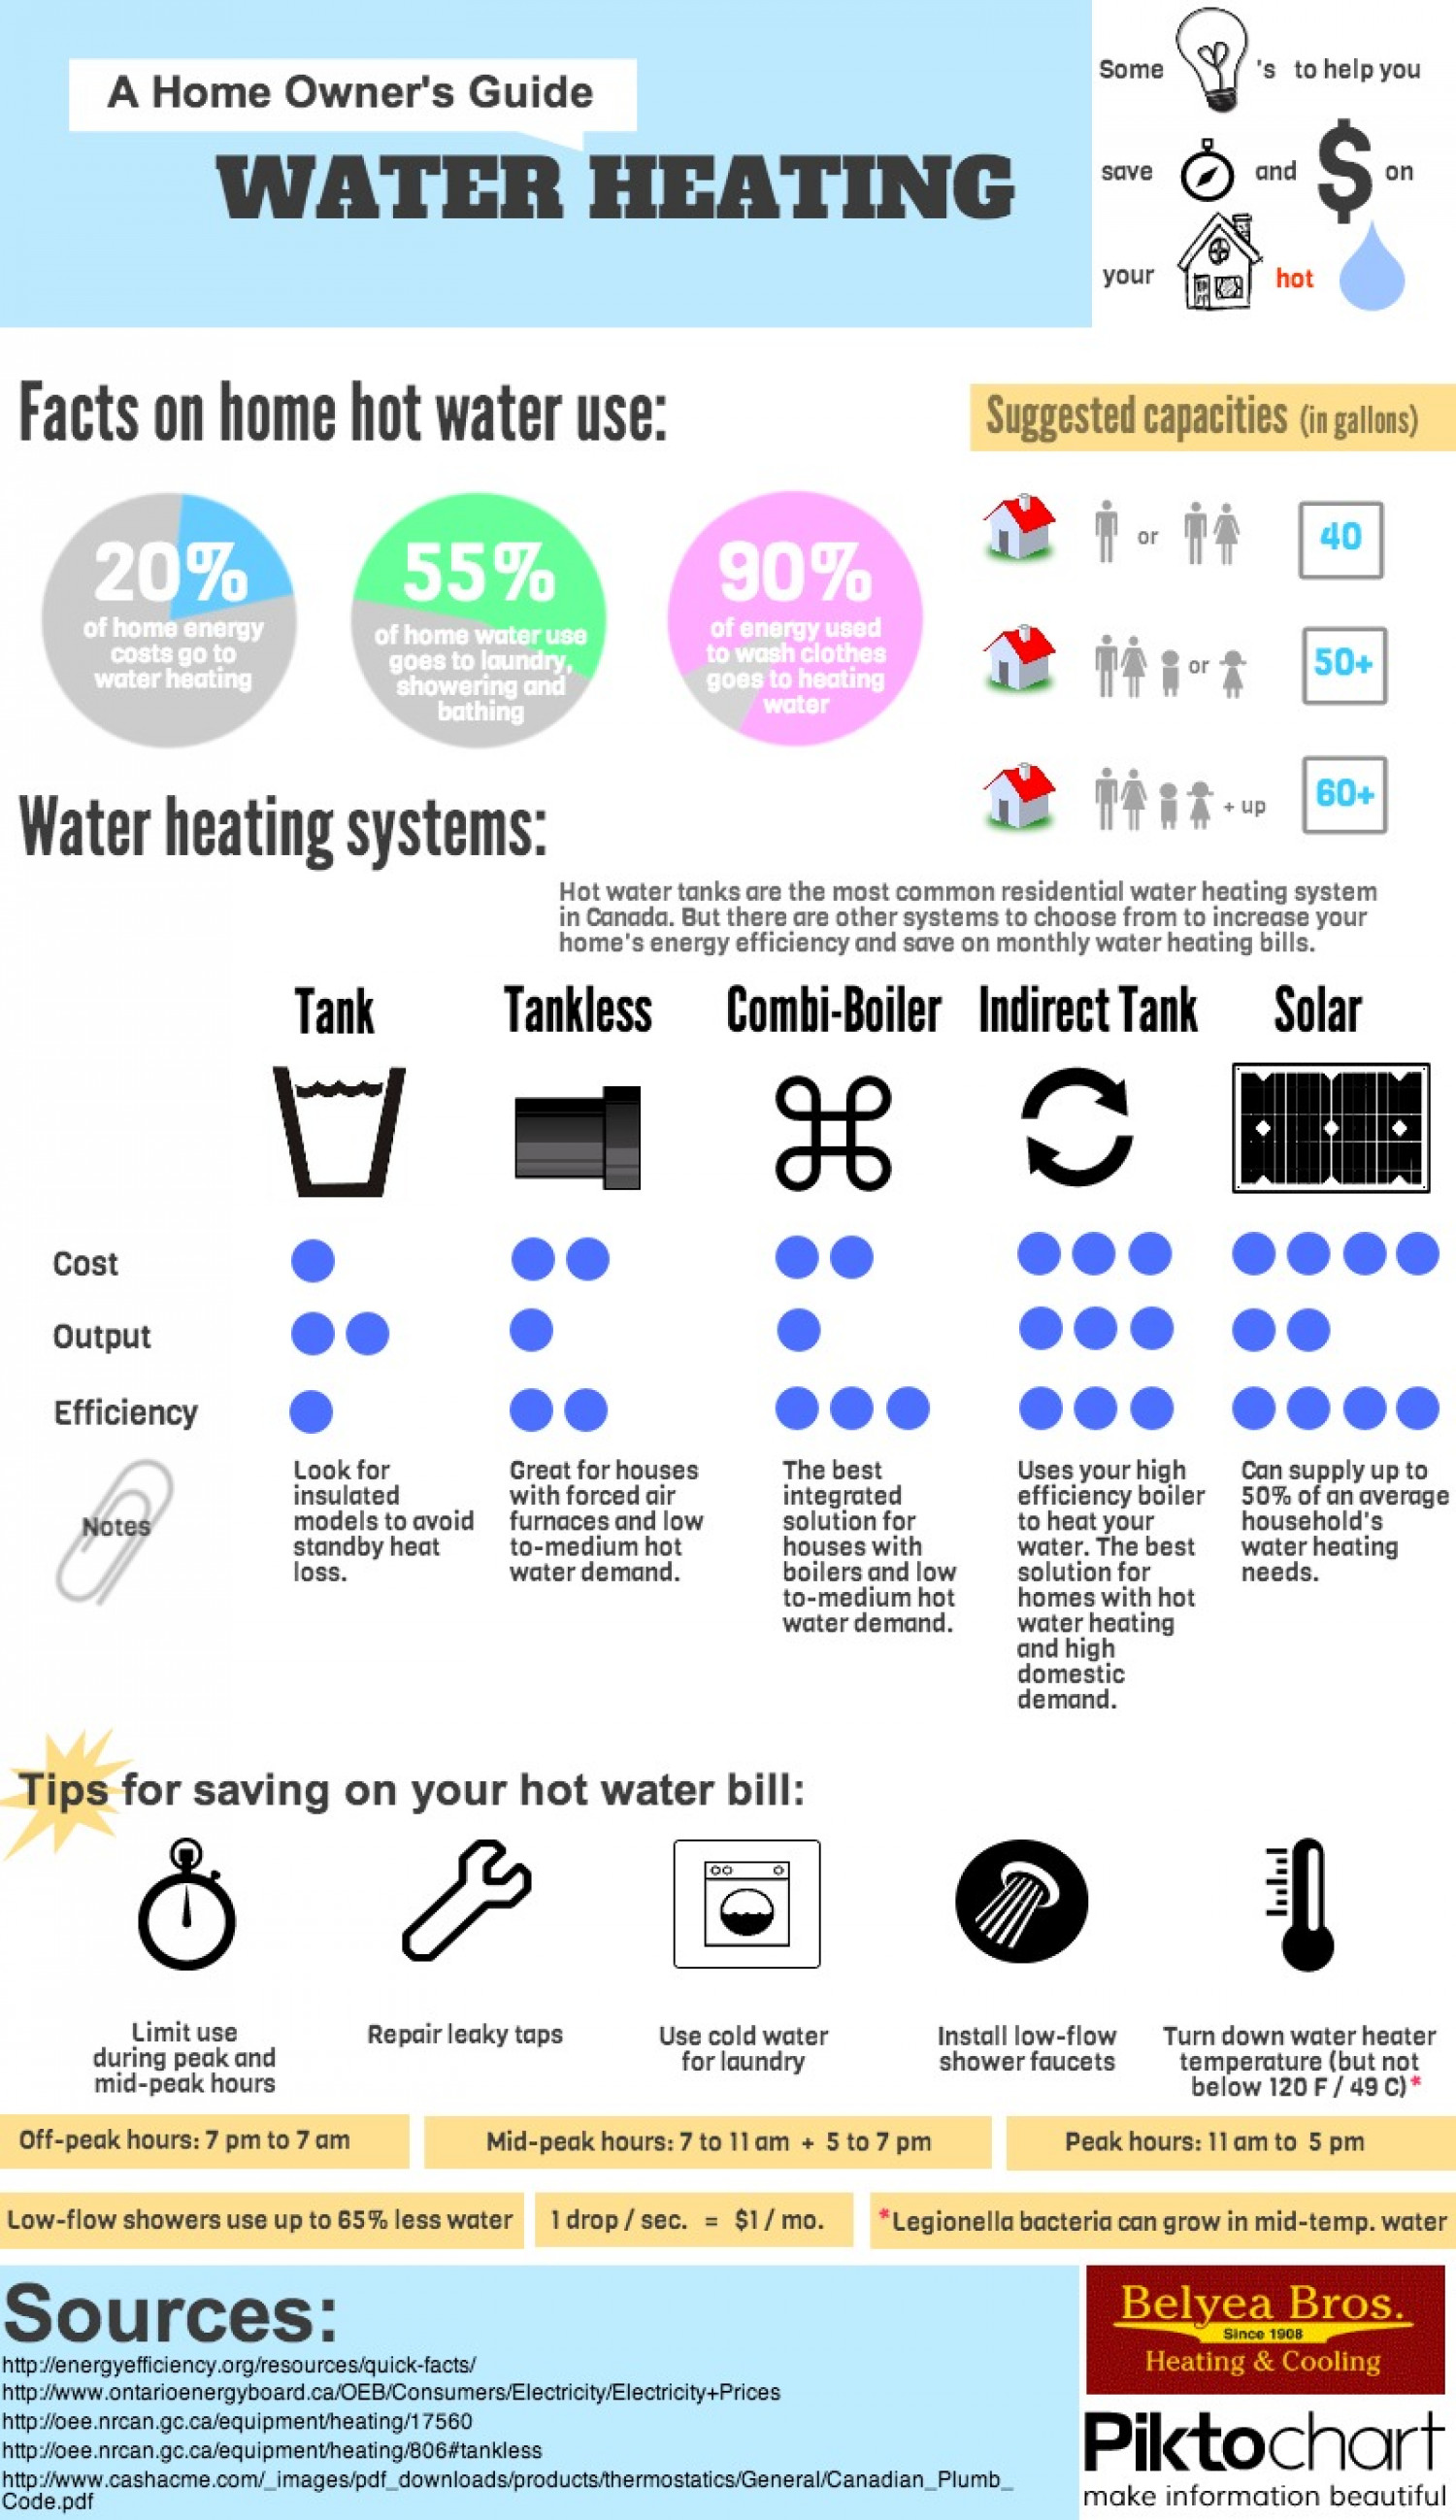 A Home Owner's Guide to Water Heating Infographic